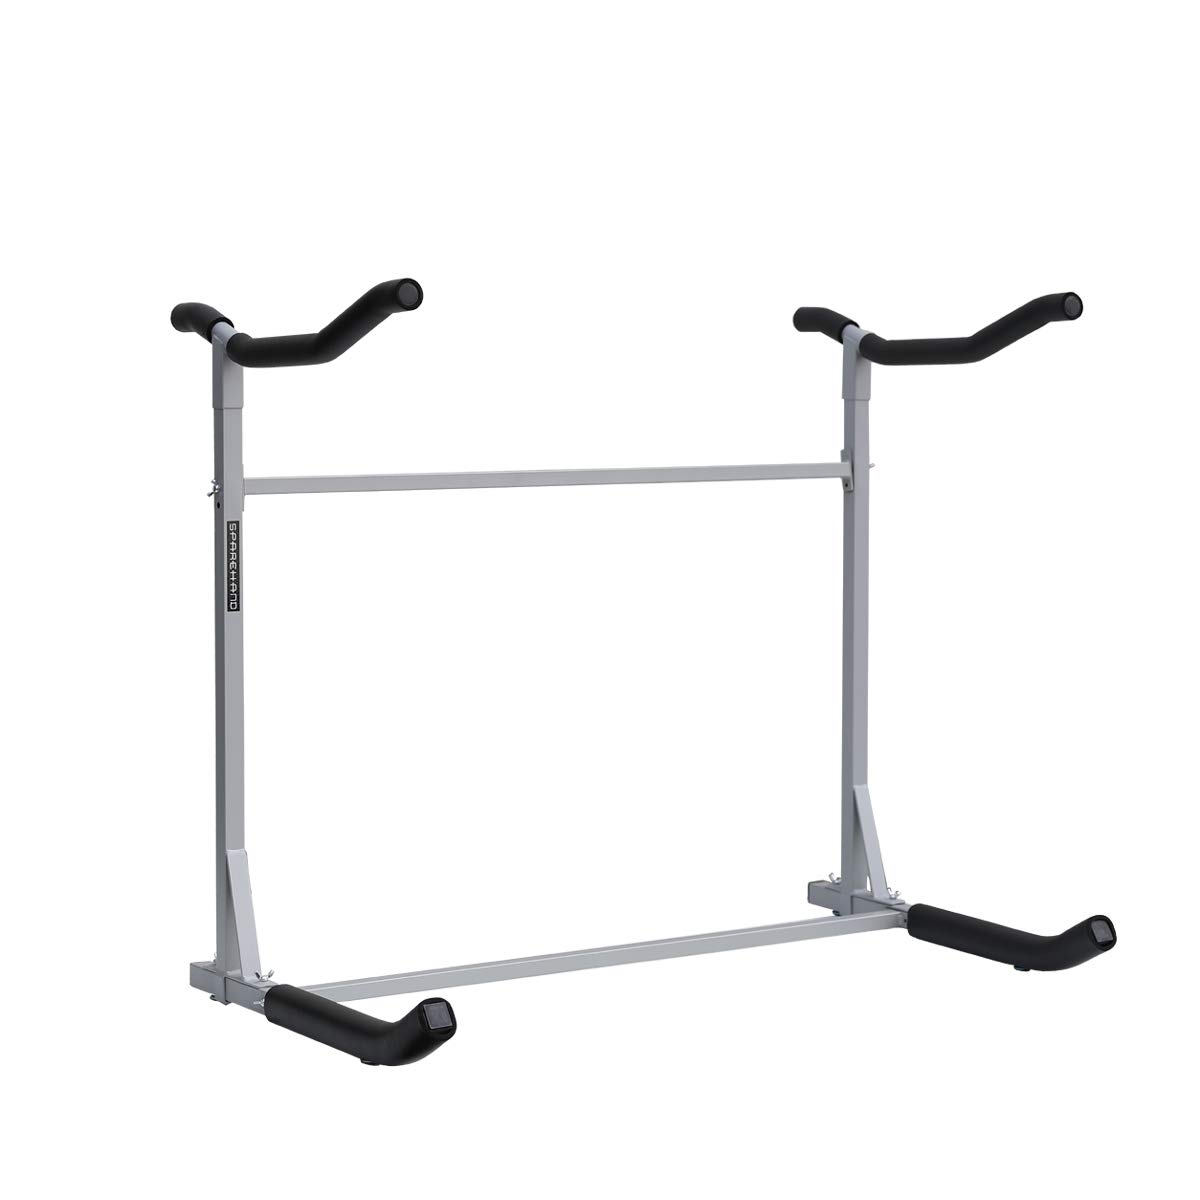 SPAREHAND Freestanding Dual Storage Rack for 2 Kayaks or SUPs, Tools-Free Assembly, Pebble Silver Finish by SPAREHAND